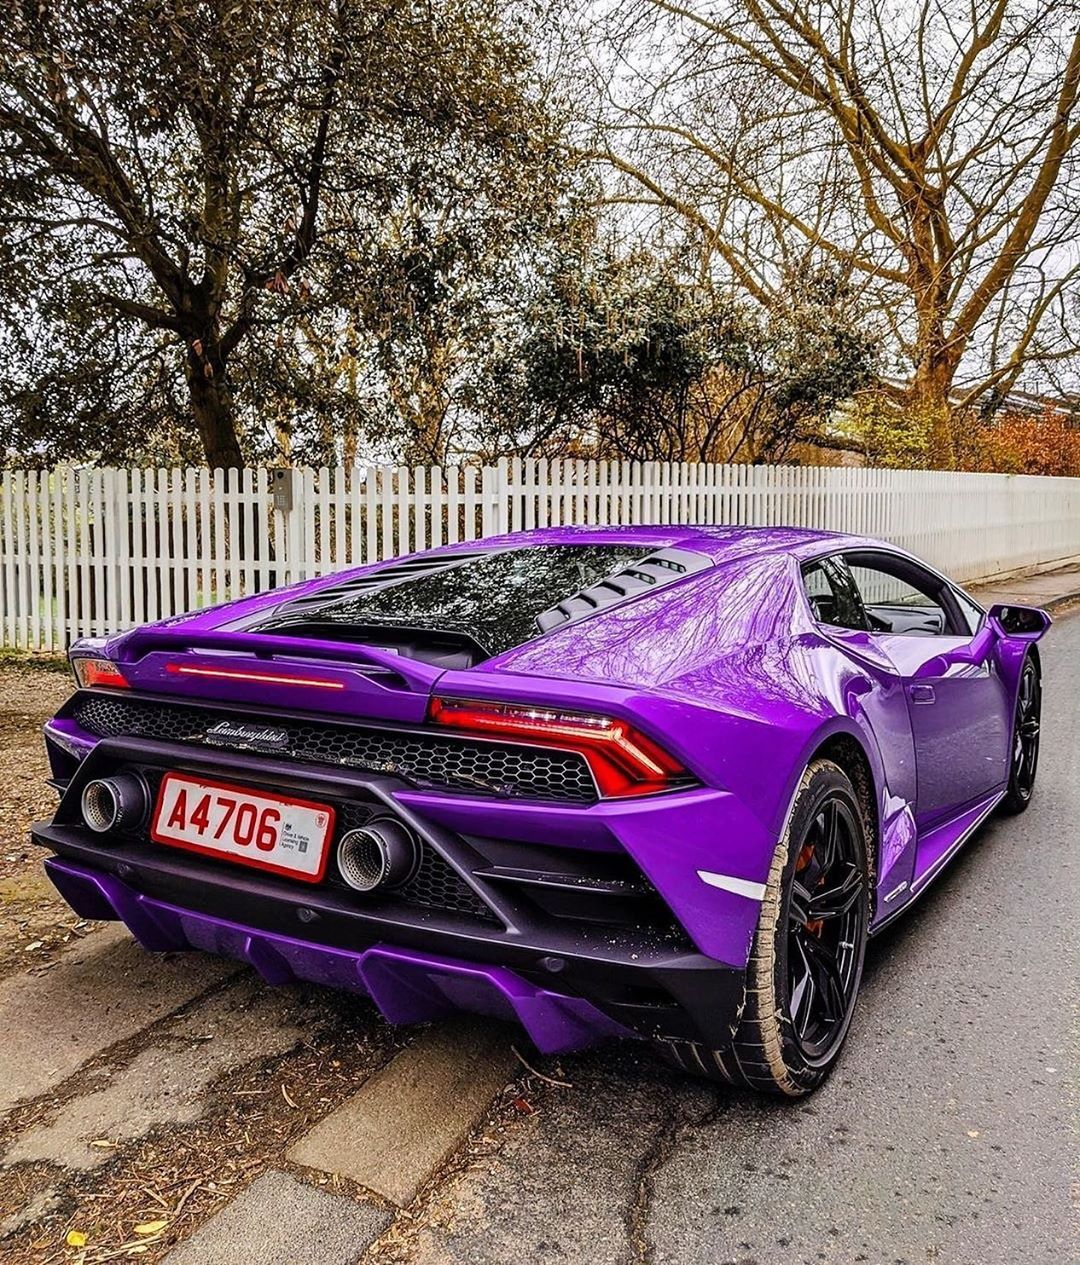 Purple Huracan Evo Yes Or No On The Spec Cars247 Wallacepjw Huracan Evo Carhoots I 2020 Supercars